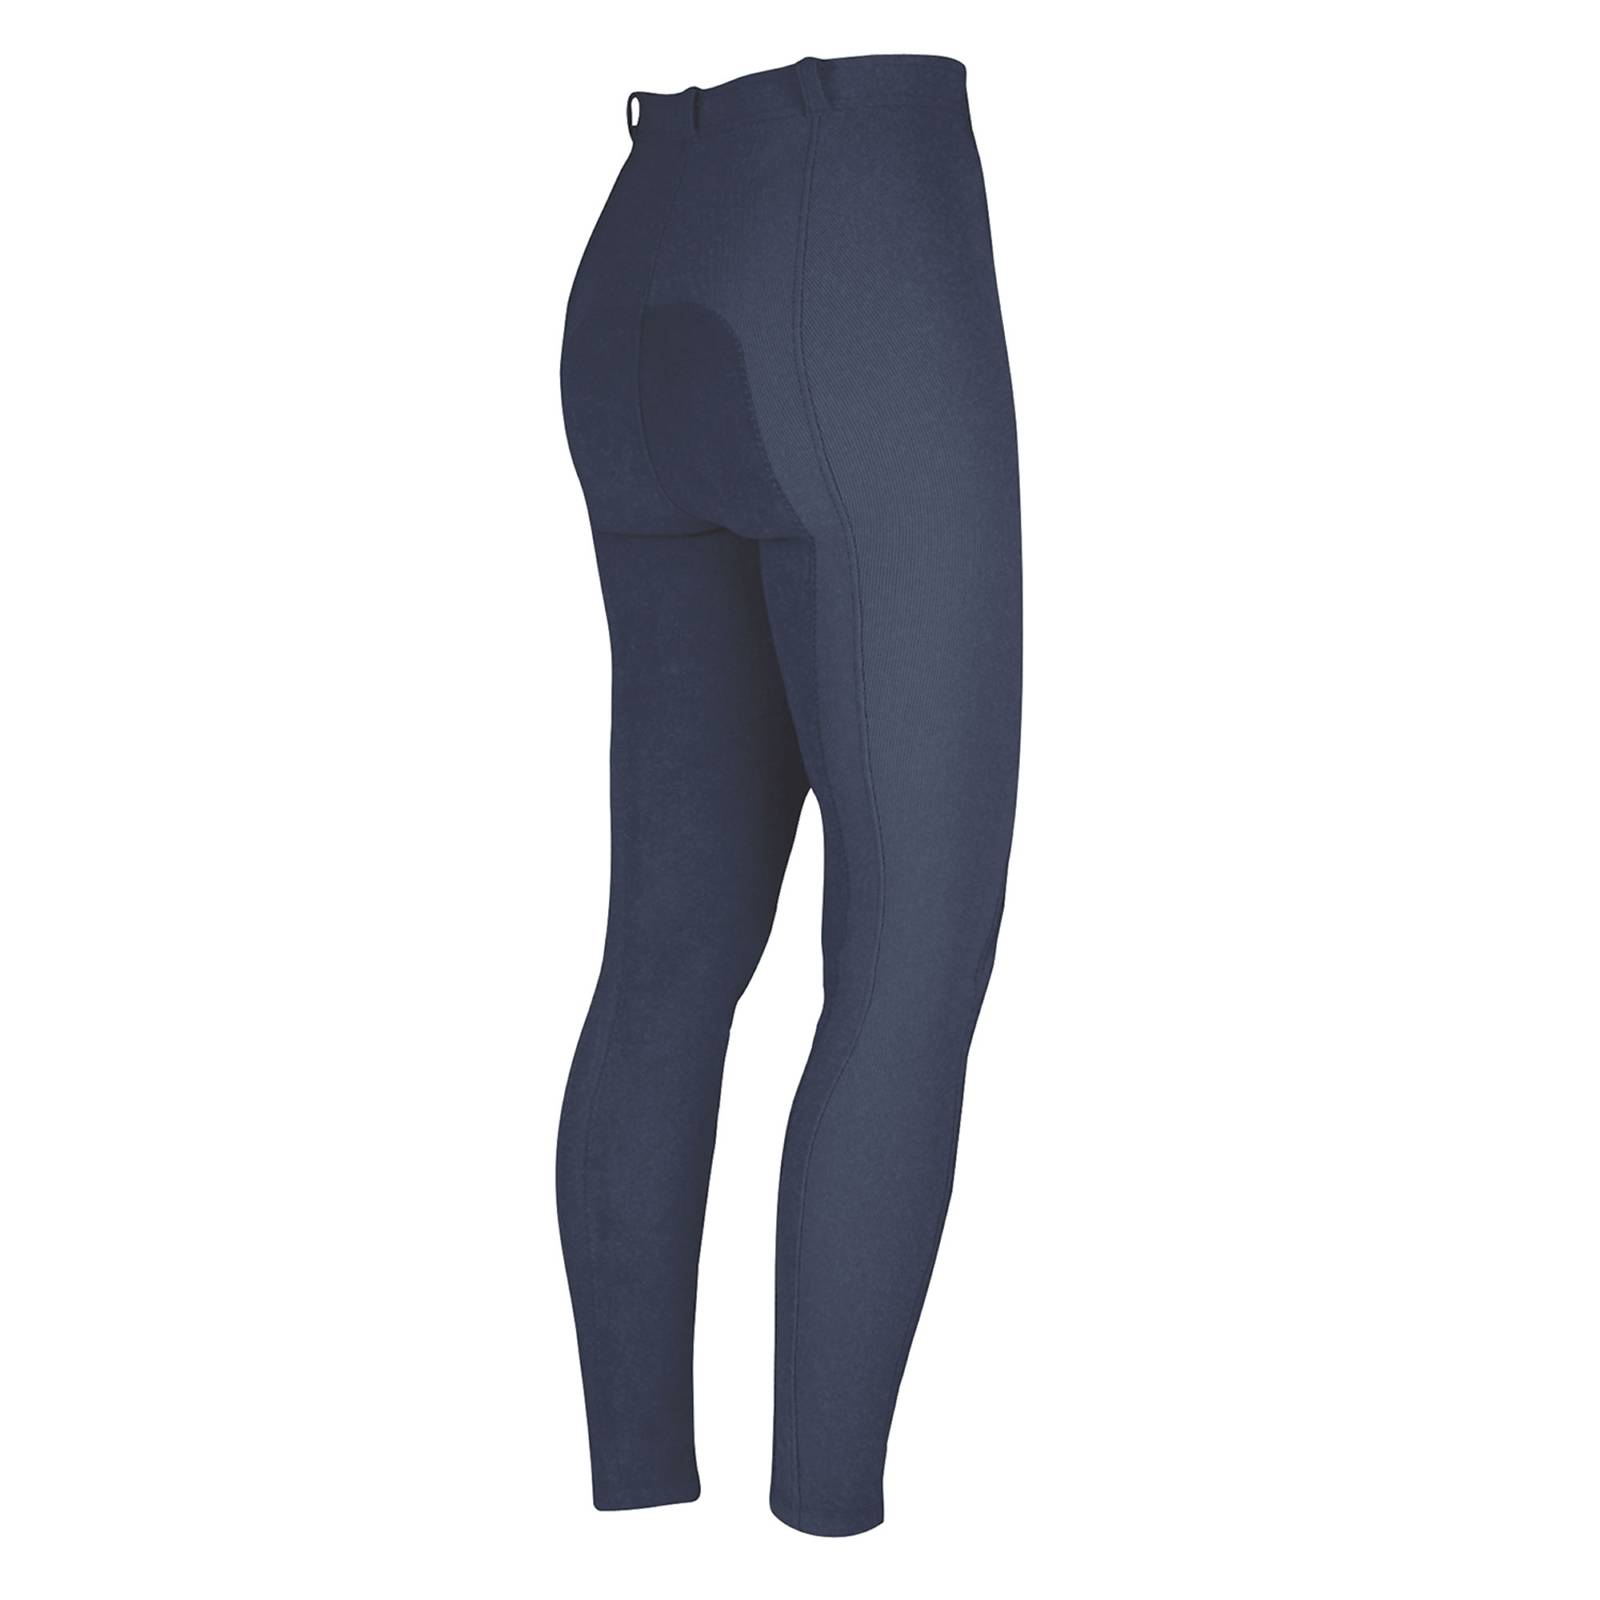 Irideon Ladies Cadence Full Seat Breeches